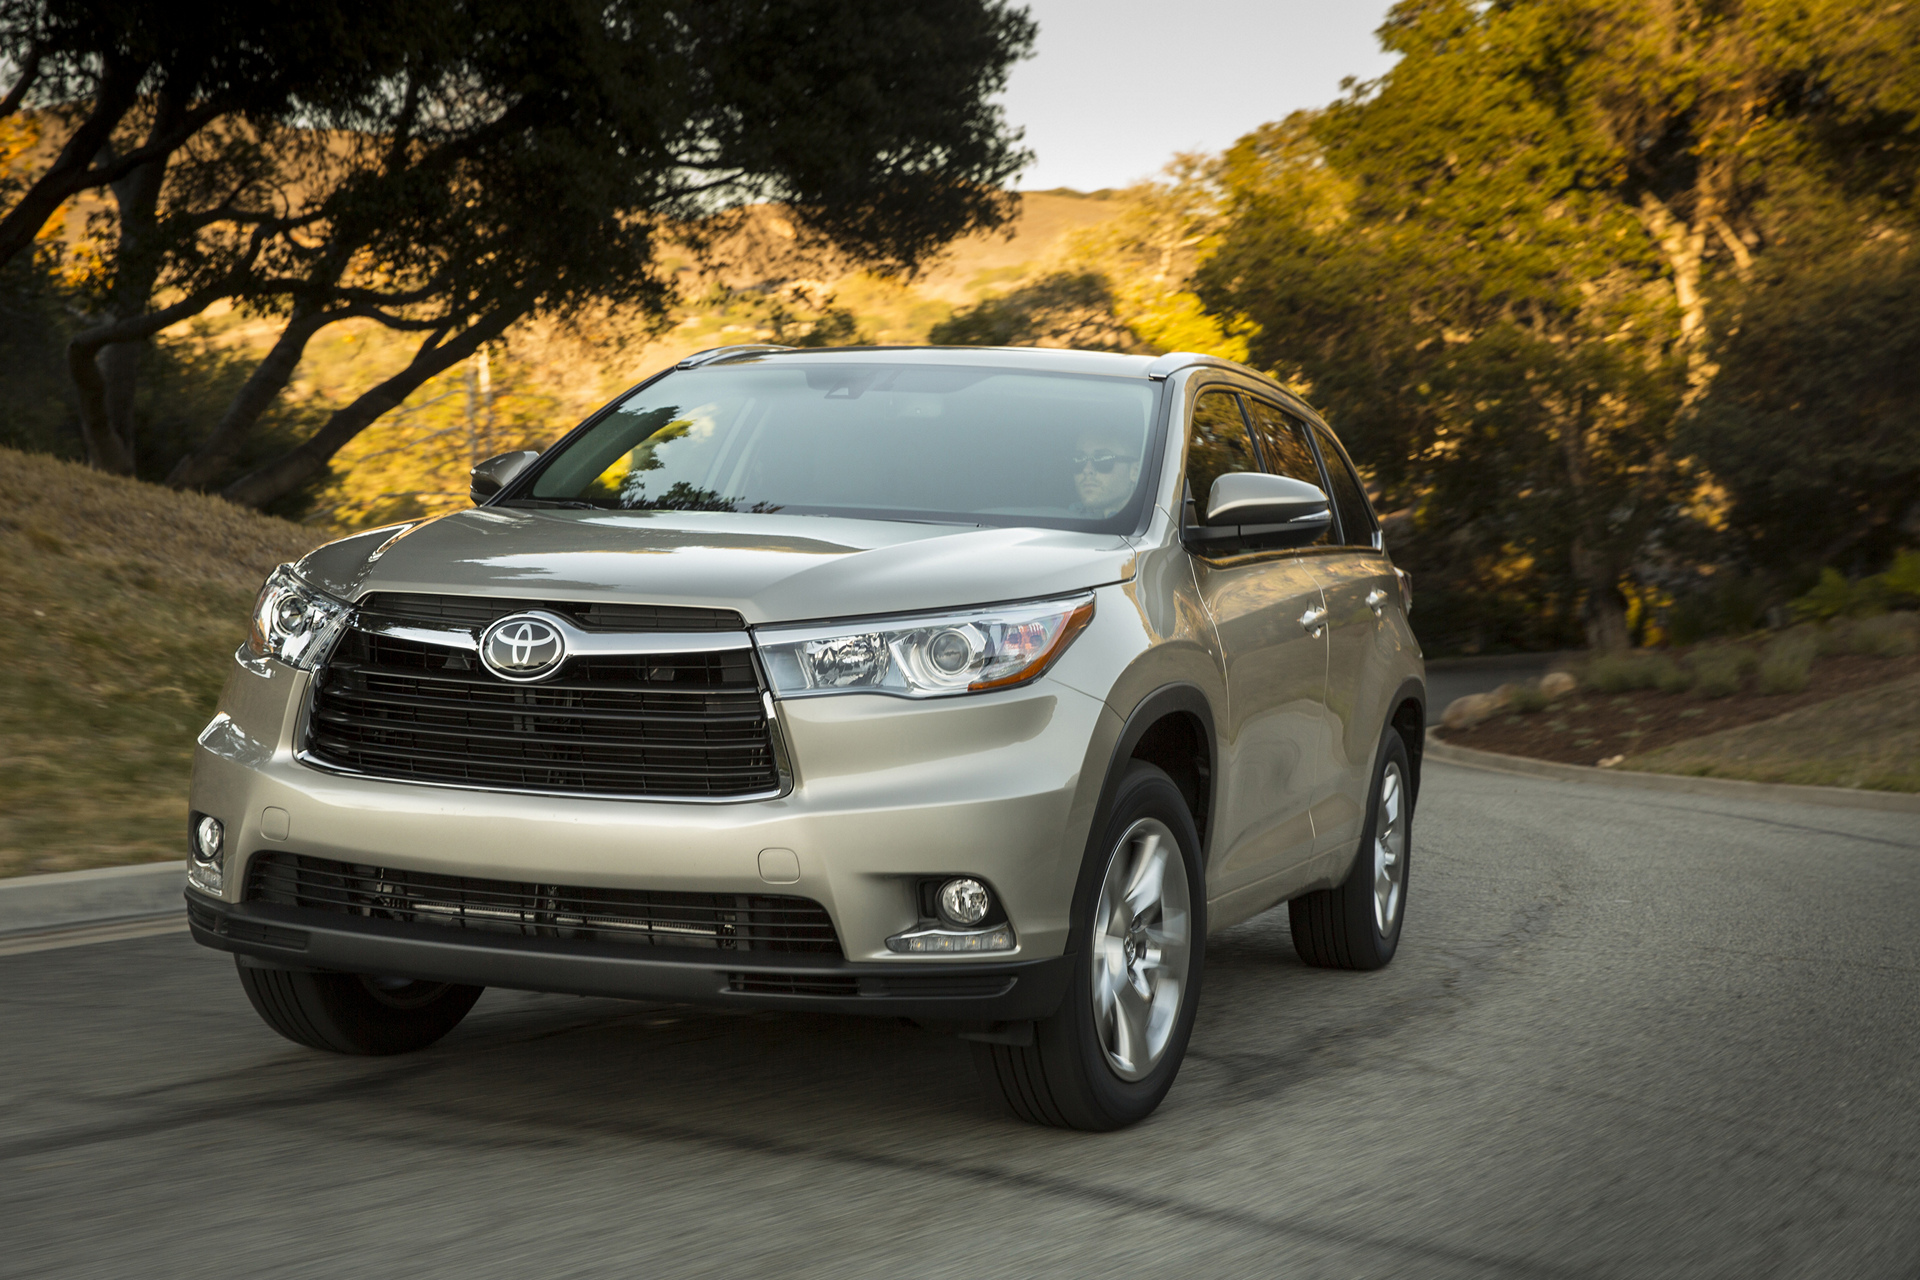 2016 Toyota Highlander Limited Platinum © Toyota Motor Corporation